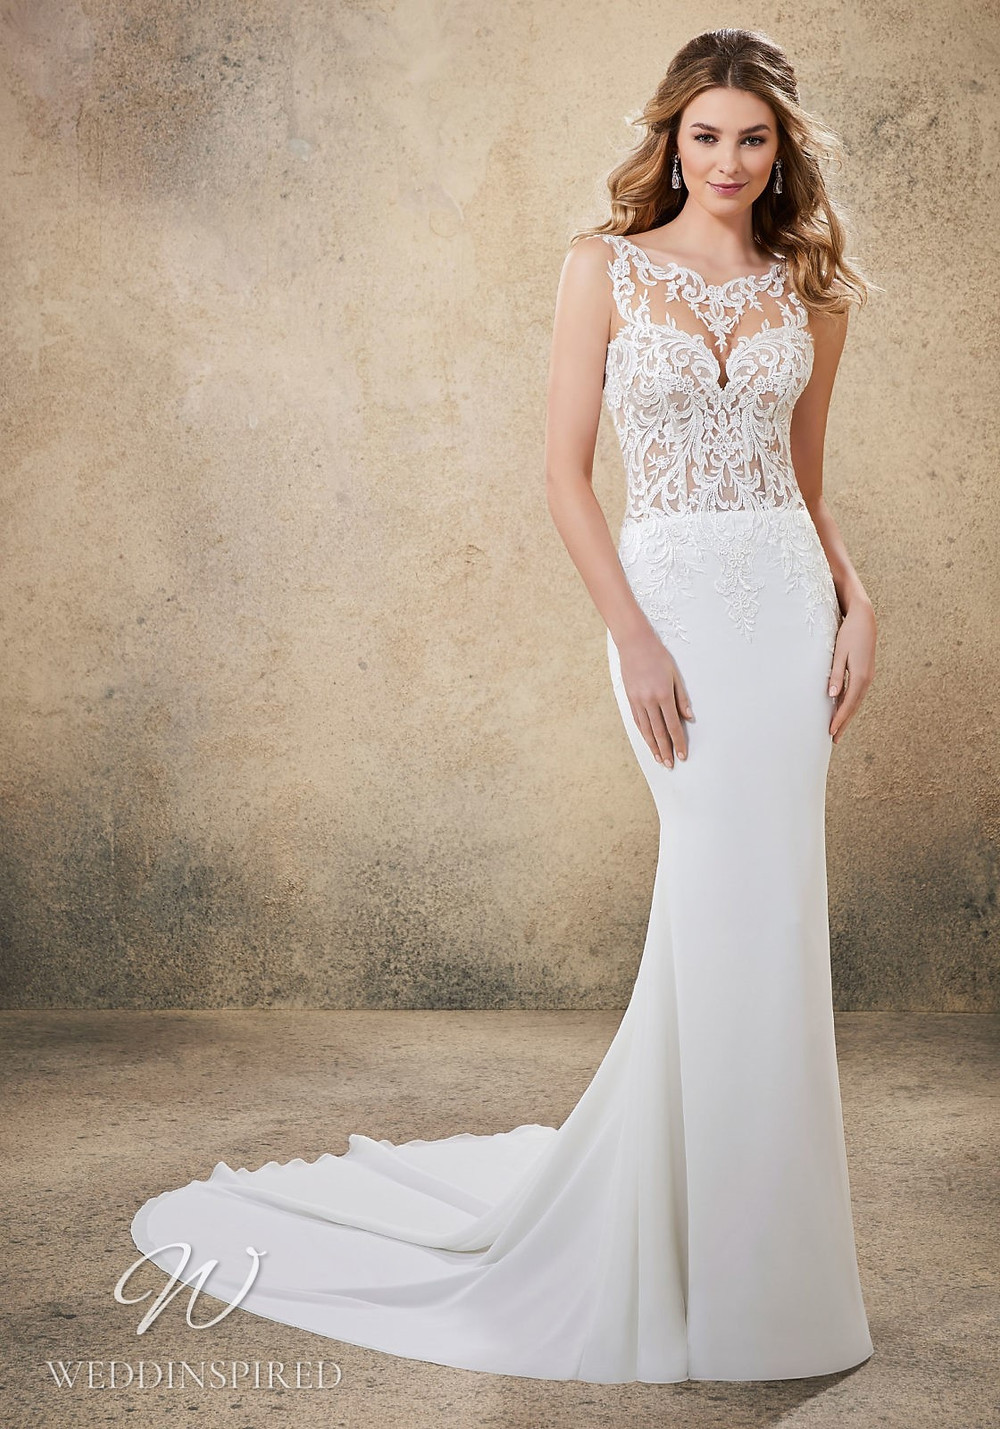 A Madeline Gardner lace and crepe mermaid wedding dress